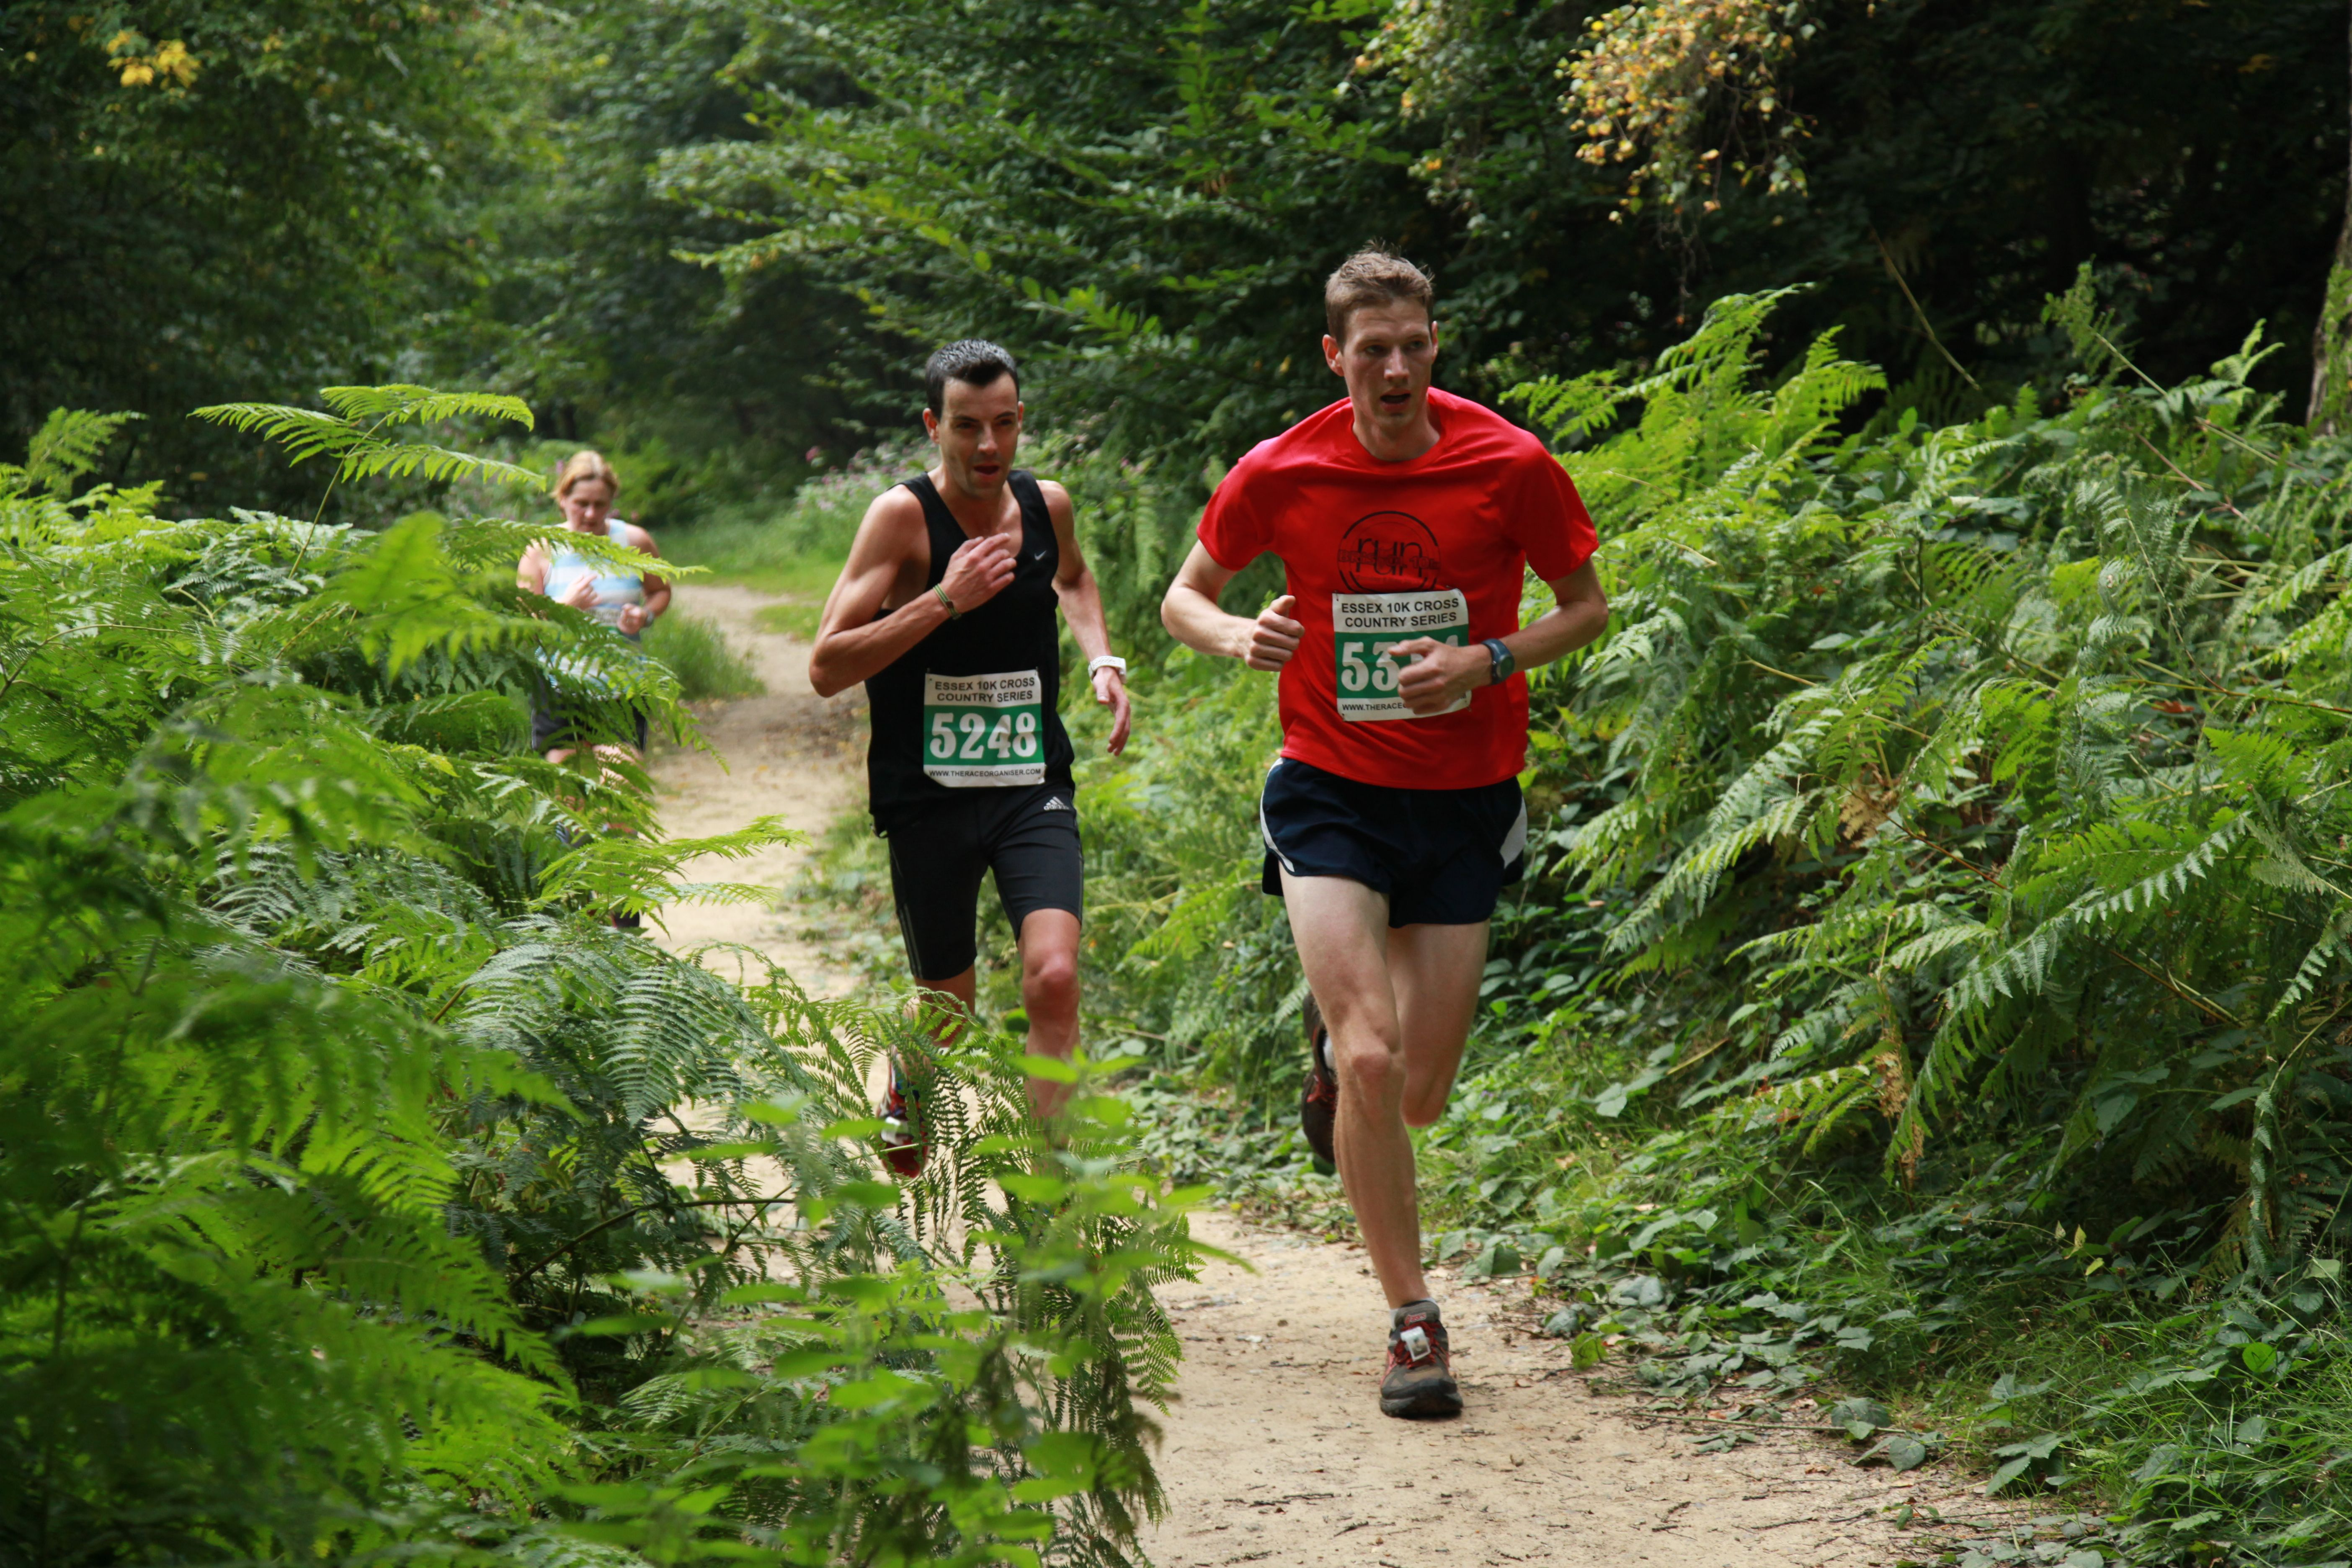 Essex Cross Country 10K Series